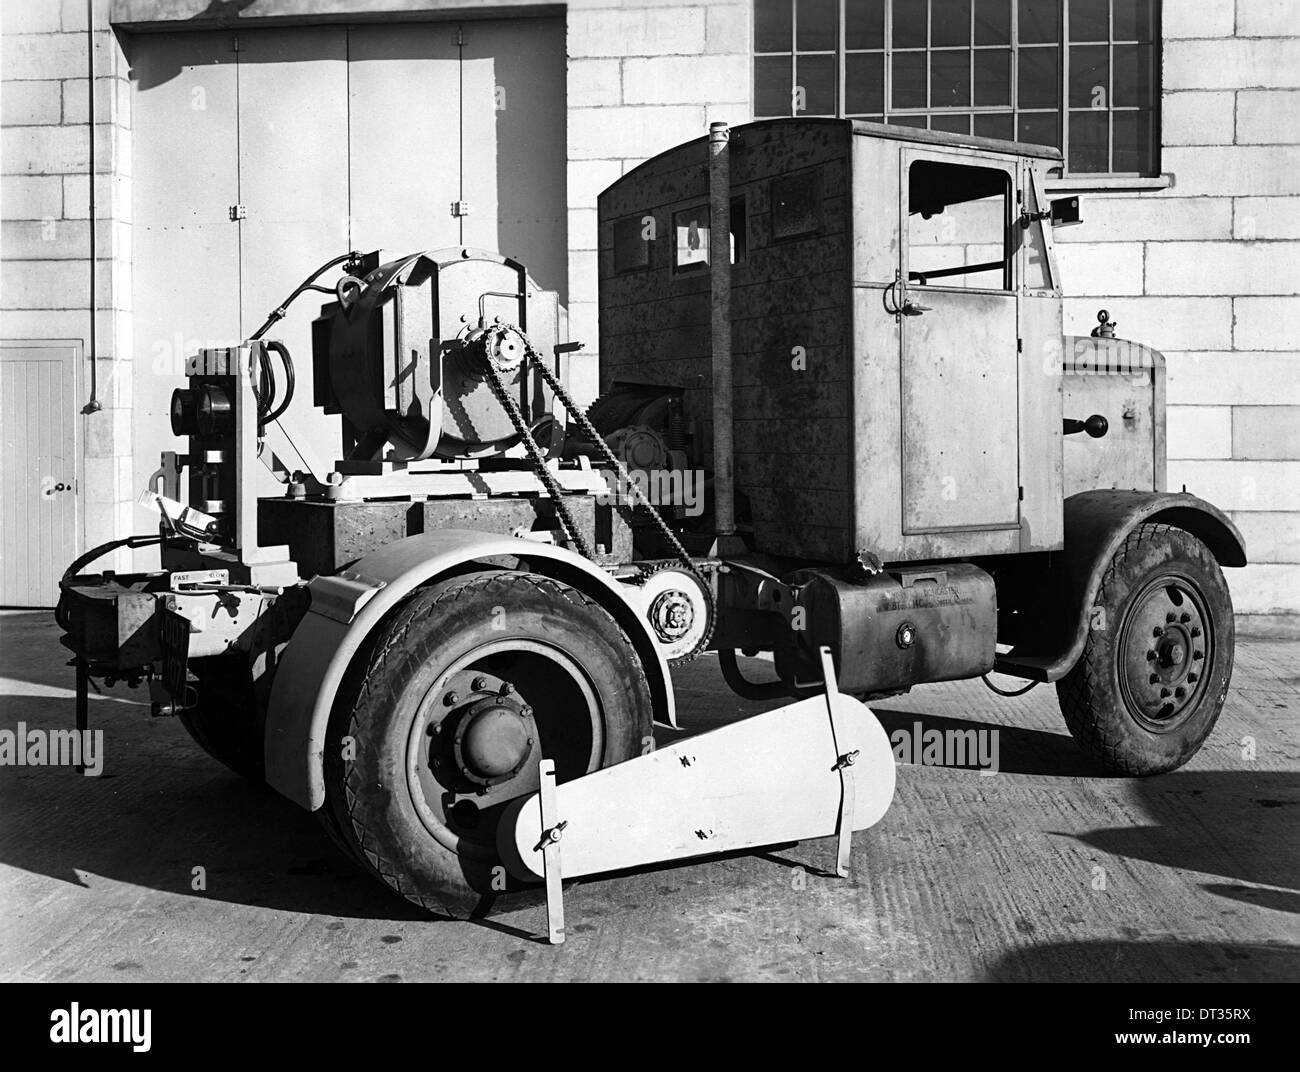 1946 Scammell Chain Drive special tractor - Stock Image